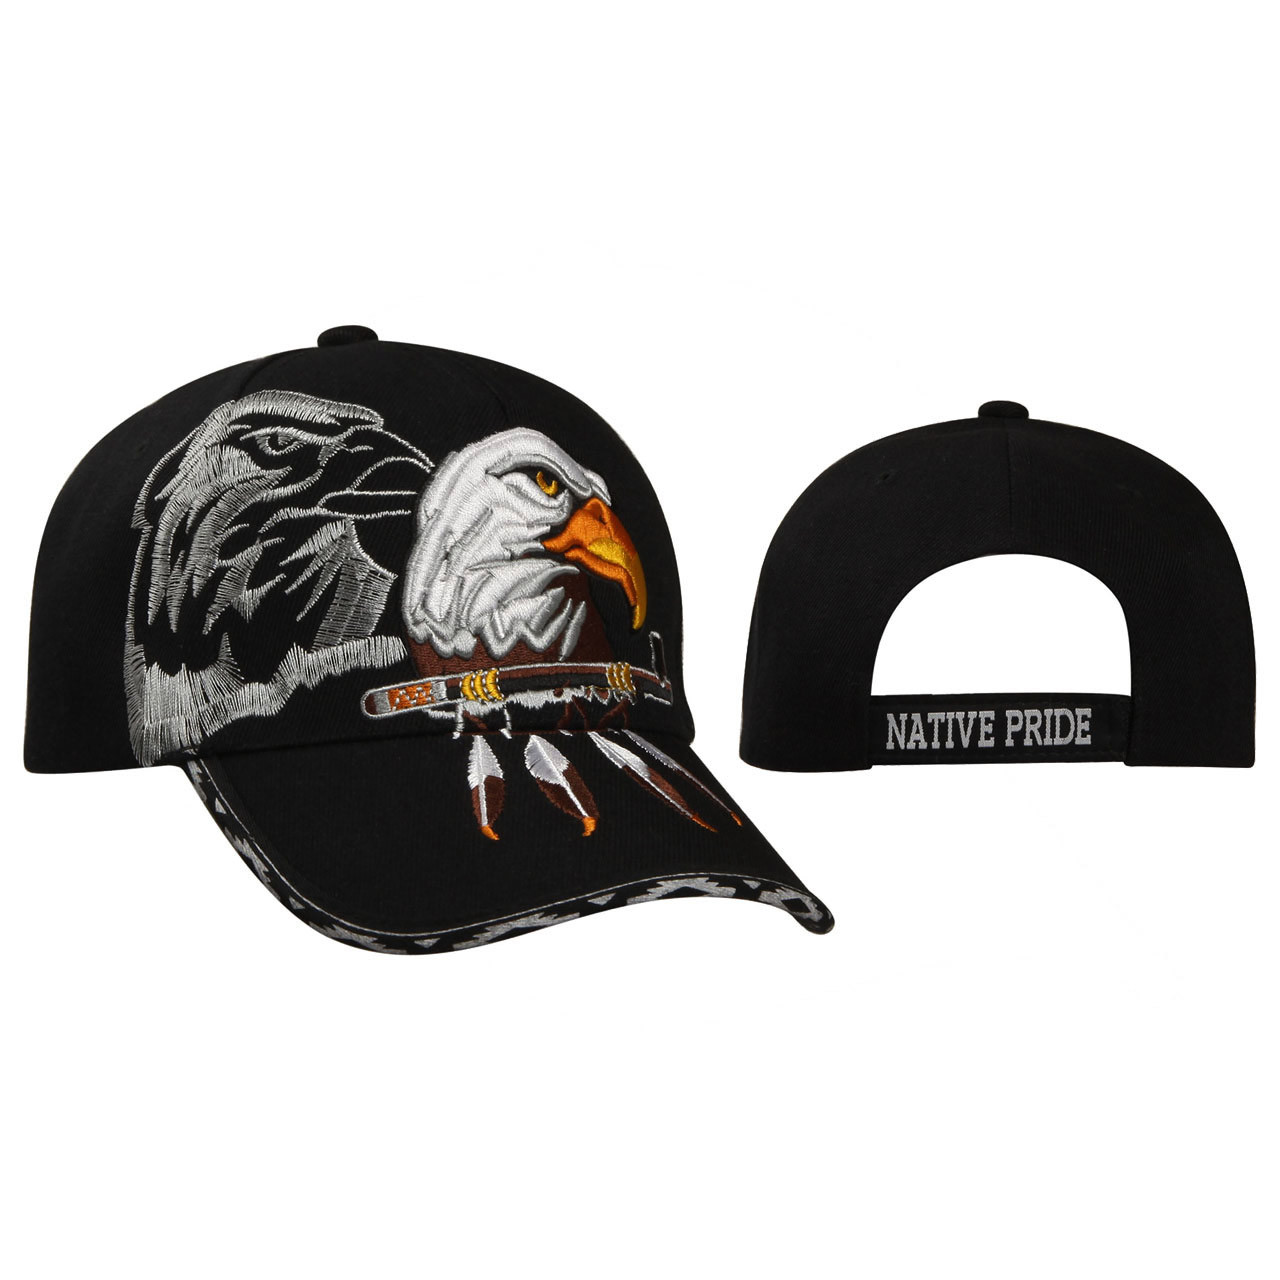 Native Pride Baseball Hat C5184 Black